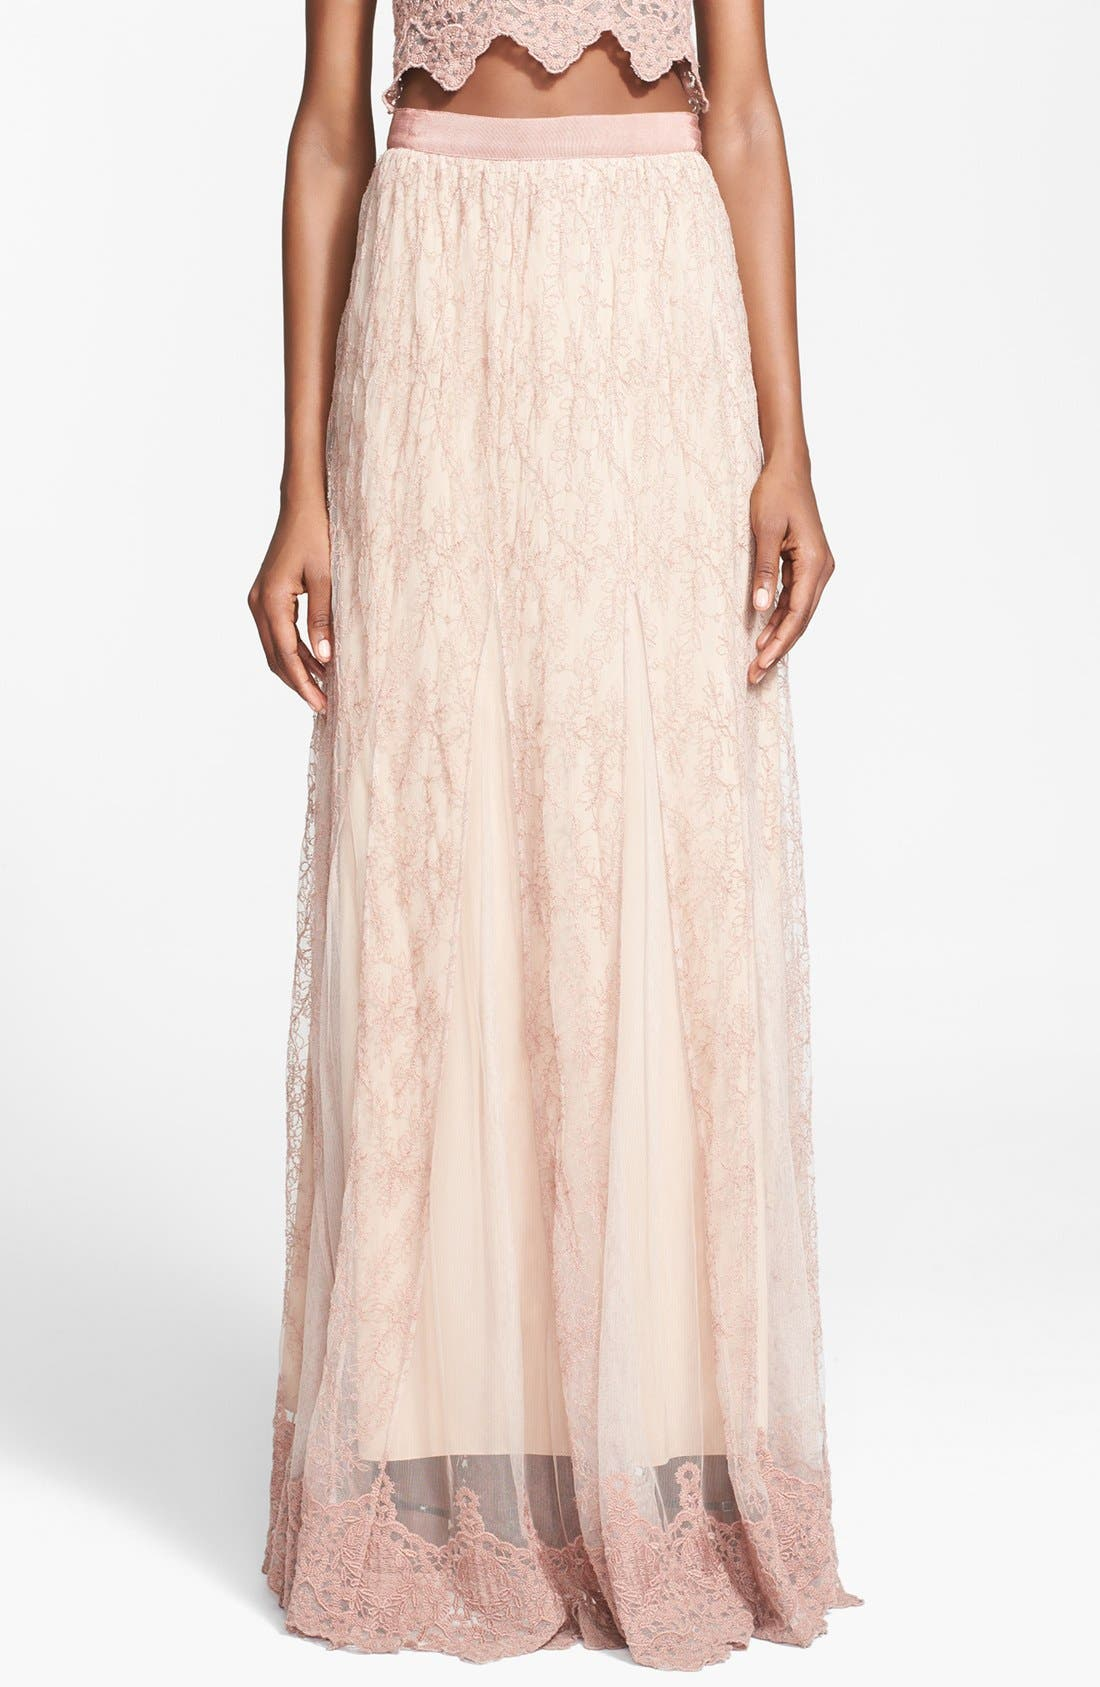 Alternate Image 1 Selected - Alice + Olivia 'Louie' Embroidered Maxi Skirt